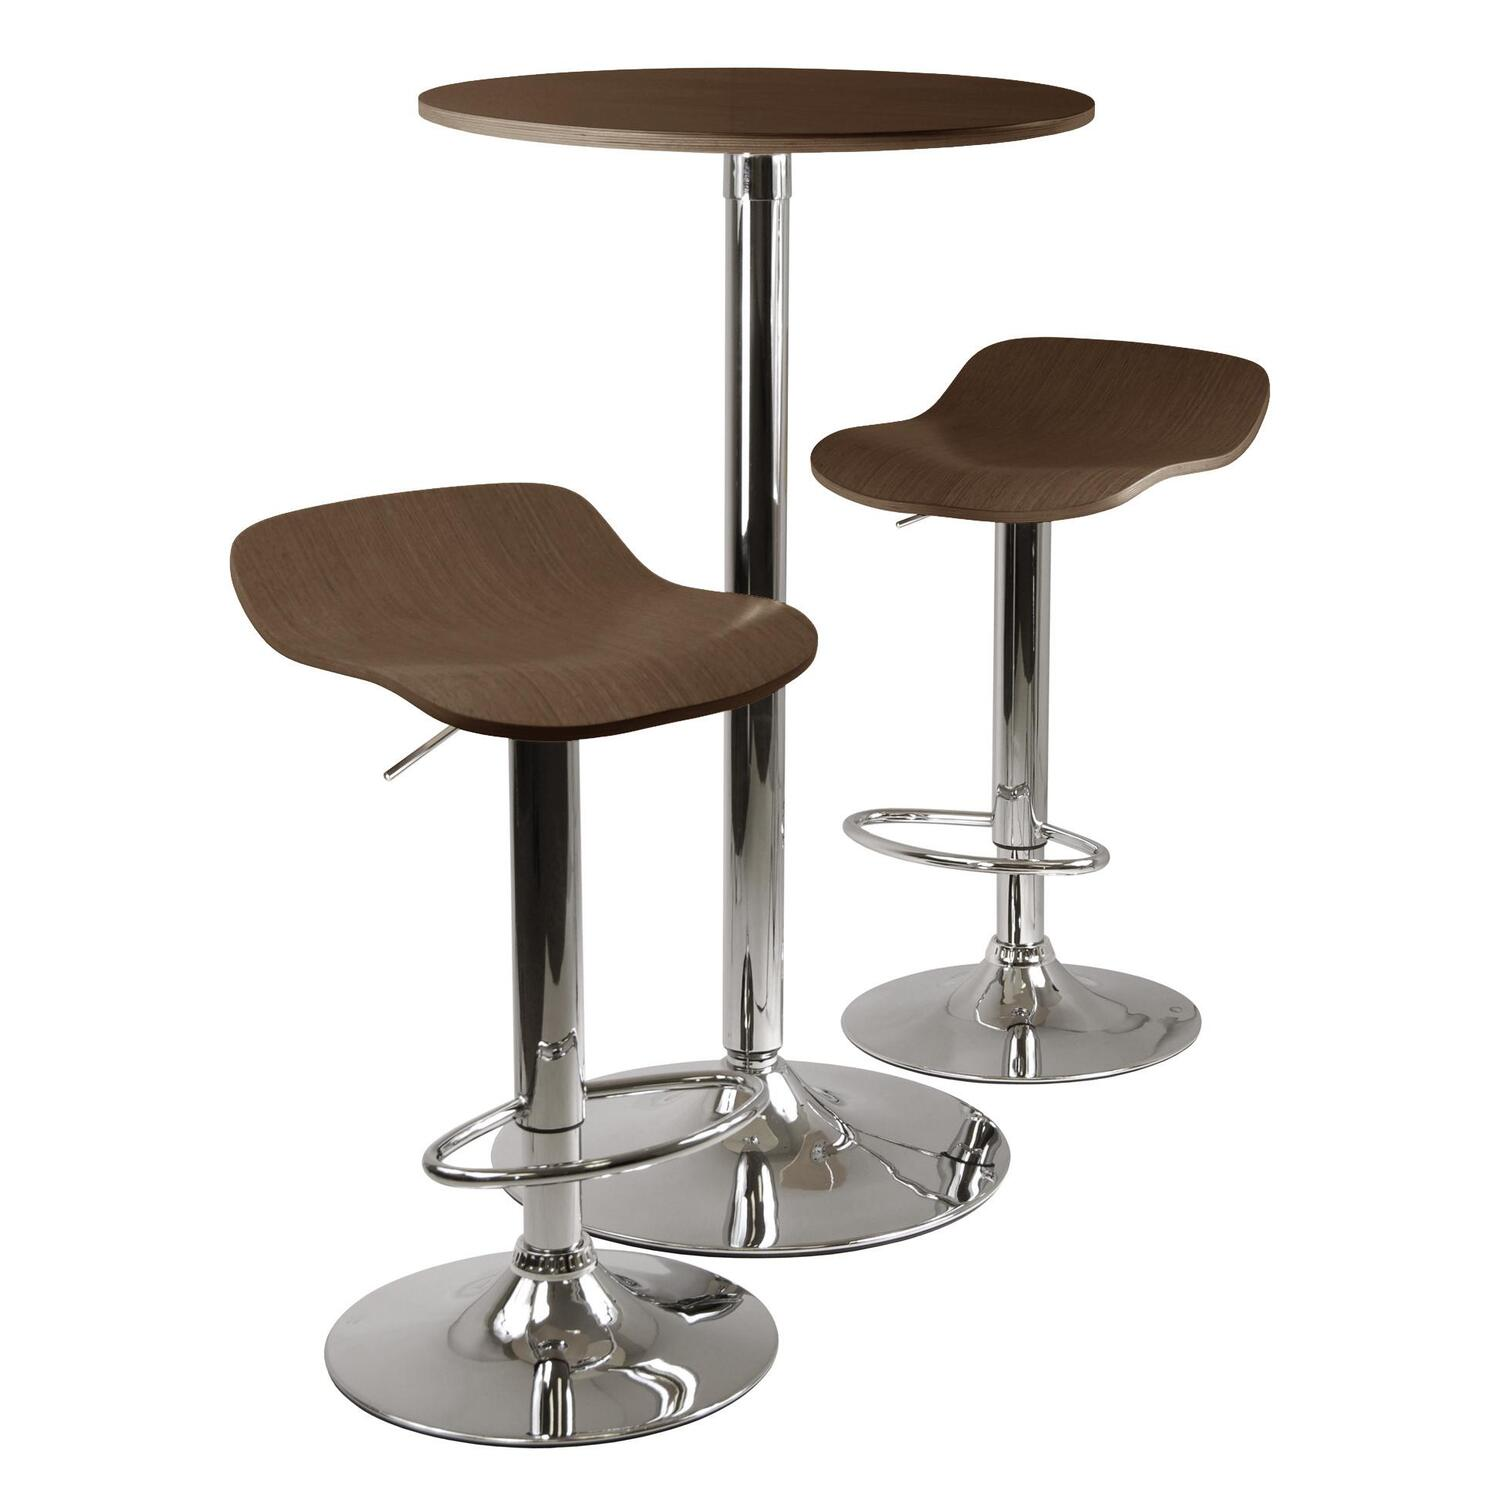 Kallie 3 Pc Pub Table And Stools Set In Cappuccino 308